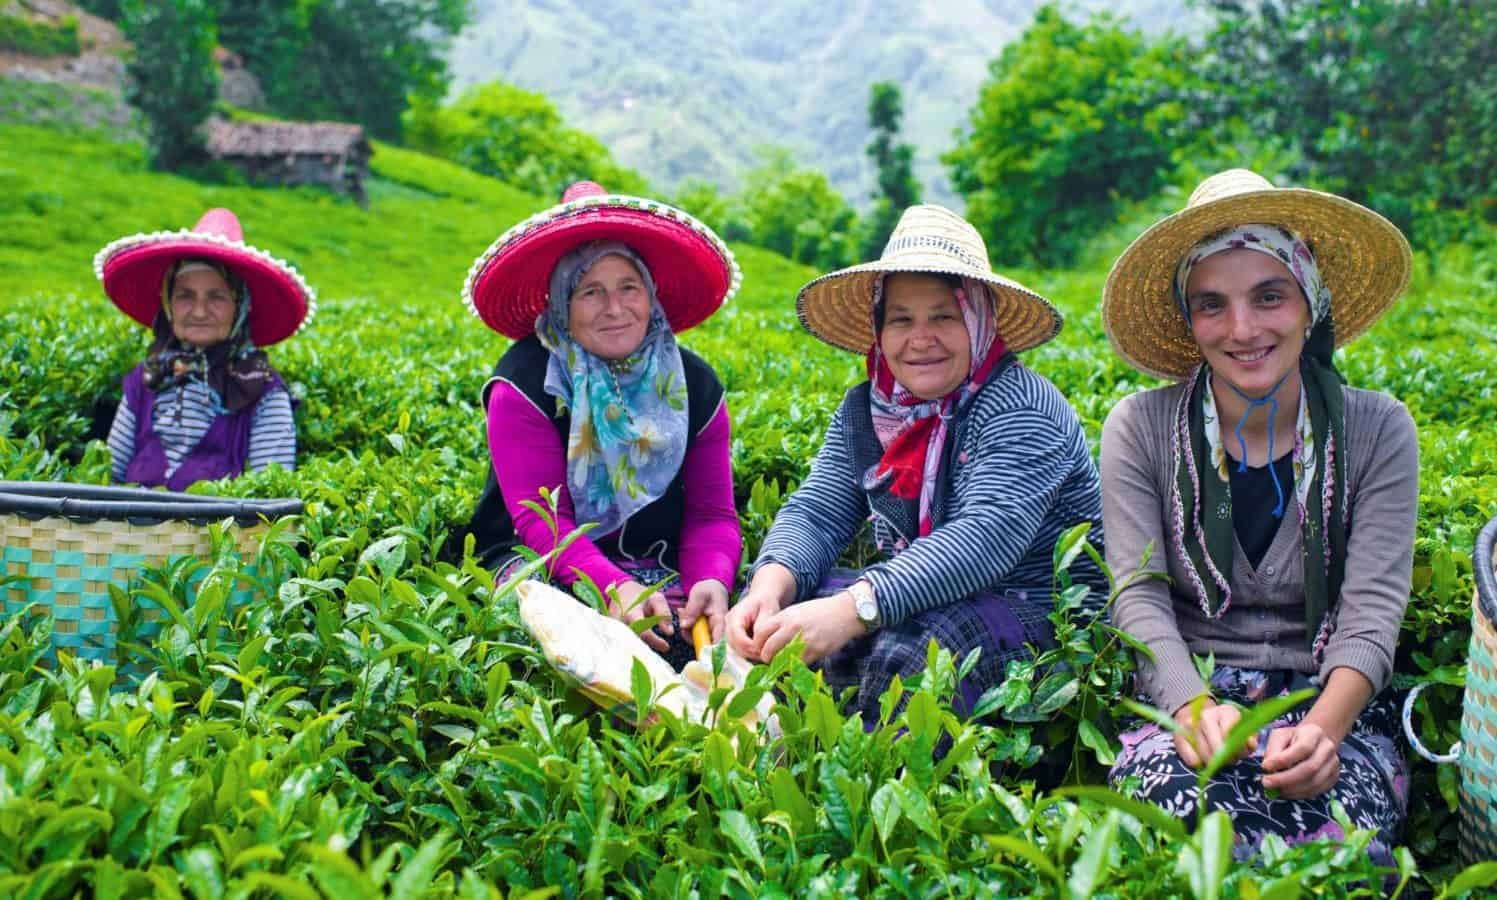 October 15 is recognized by the United Nations as the International Day of Rural Women, a day to honor rural women worldwide.